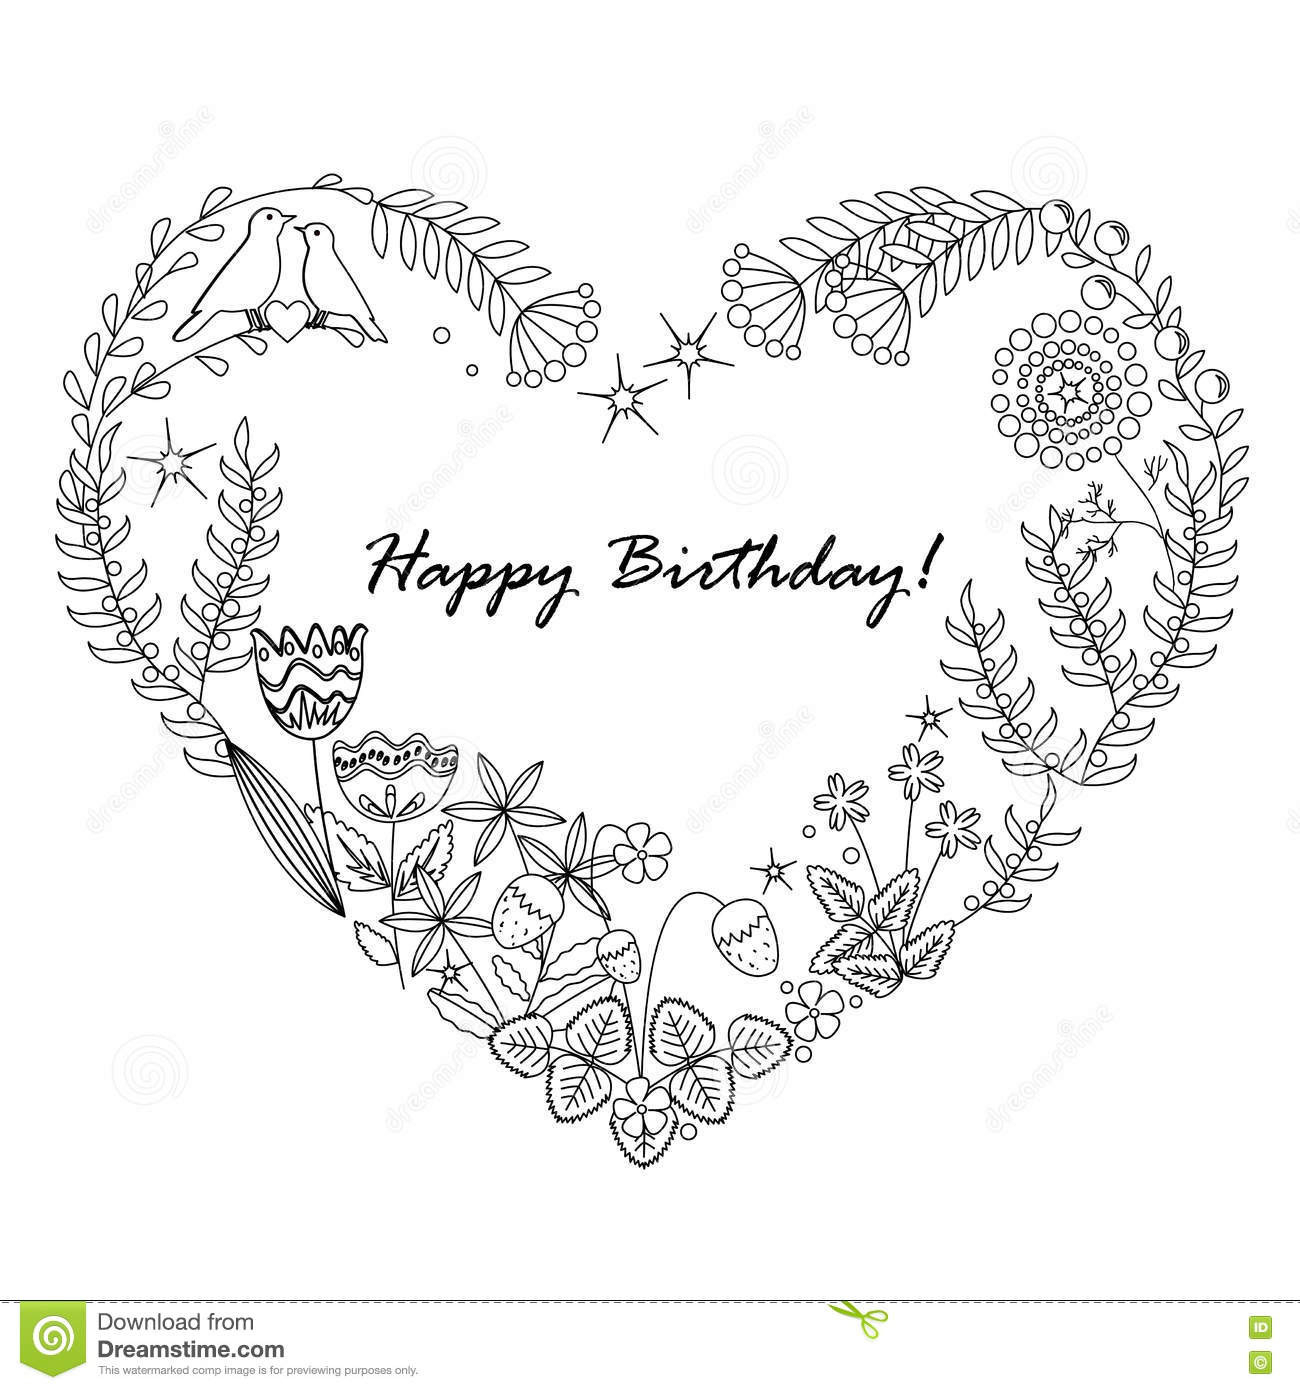 Happy Birthday Coloring Pages For Friends Happy Birthday Coloring Pages New Free Printable Happy Birthday